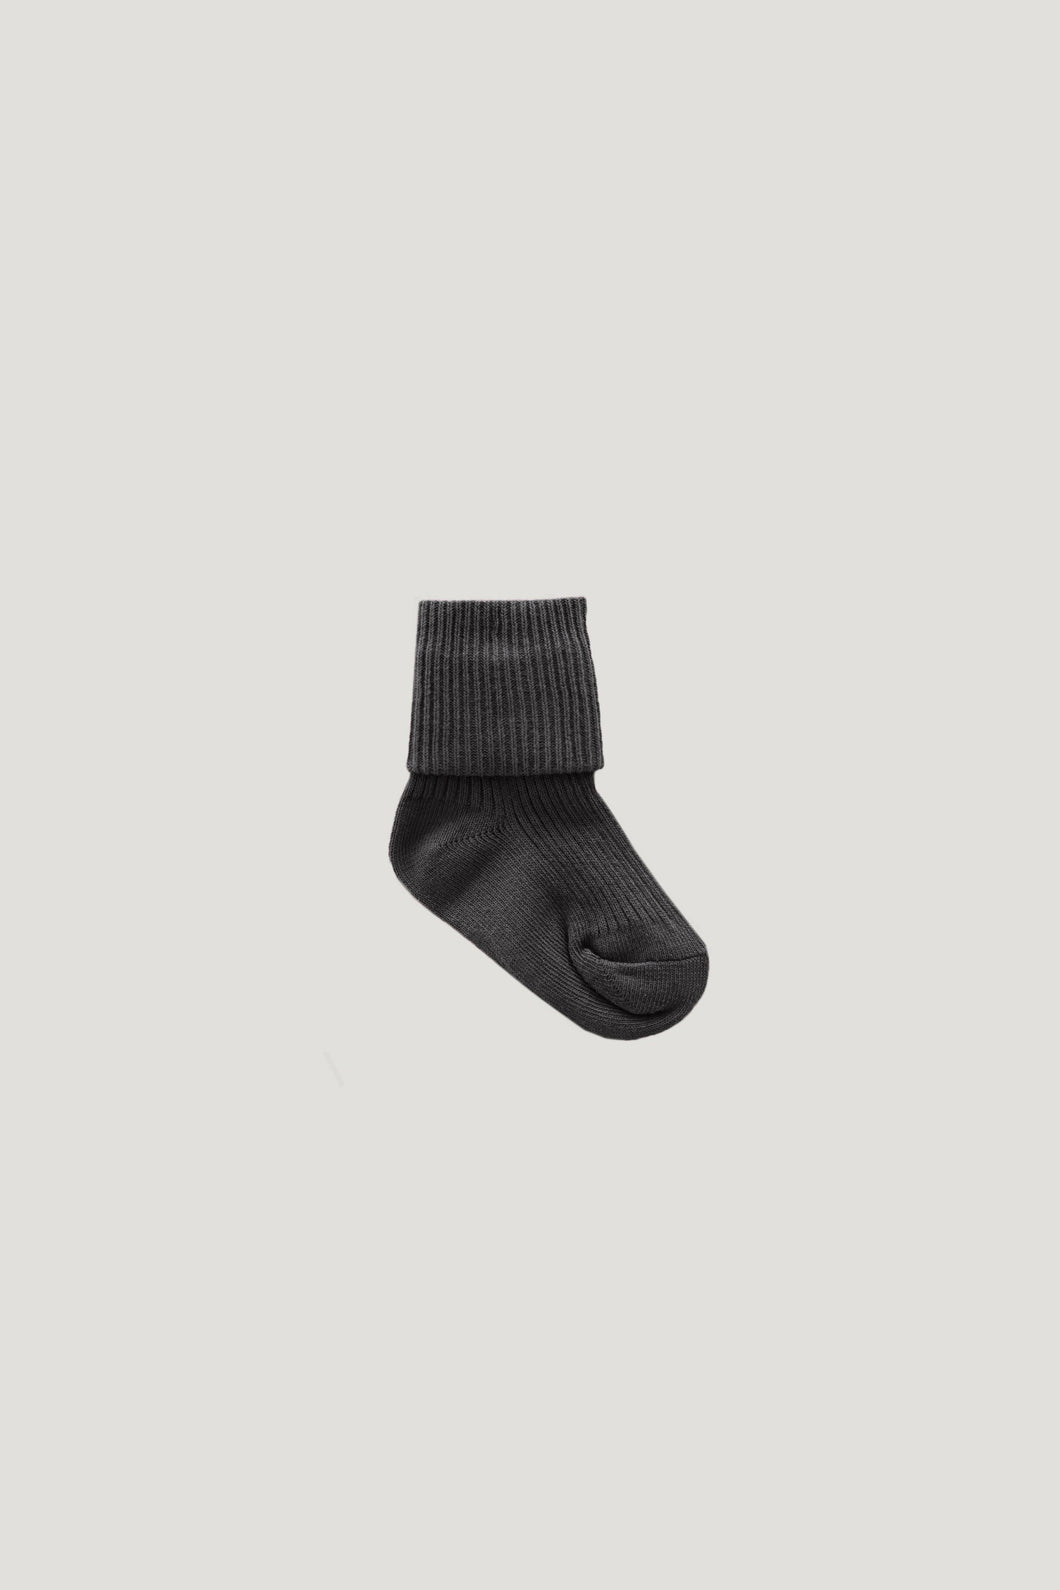 Jamie Kay ribbed socks - dark grey